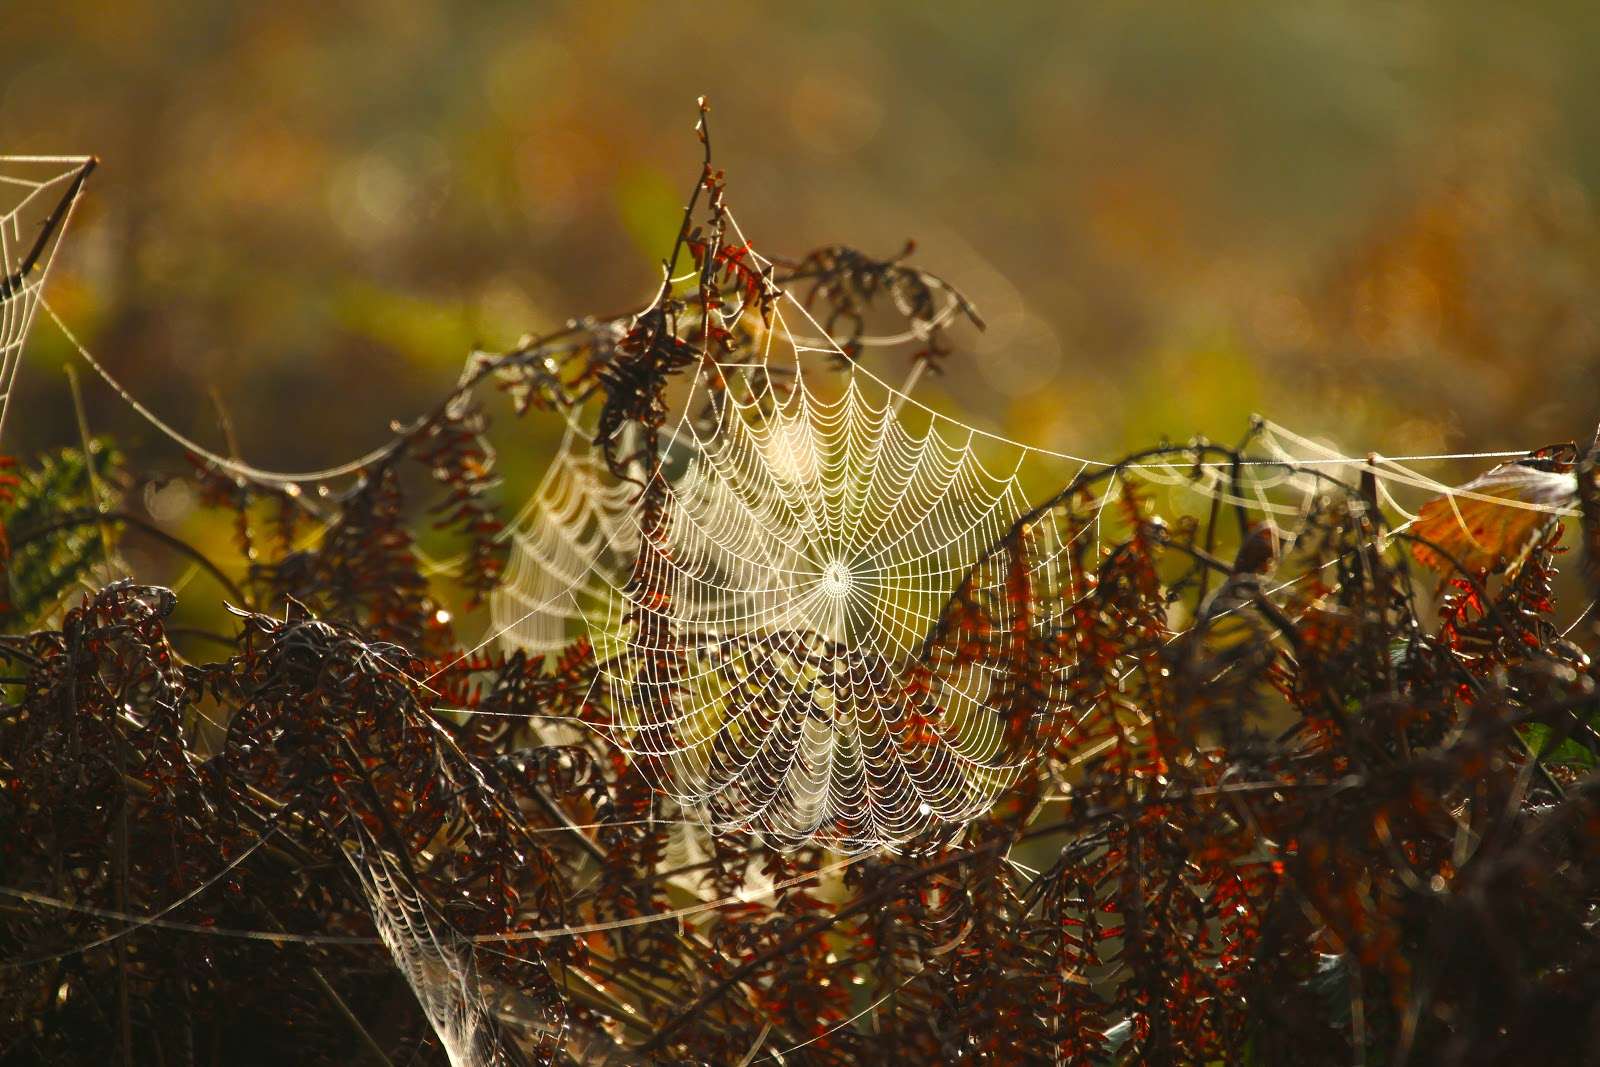 The beauty of the web……